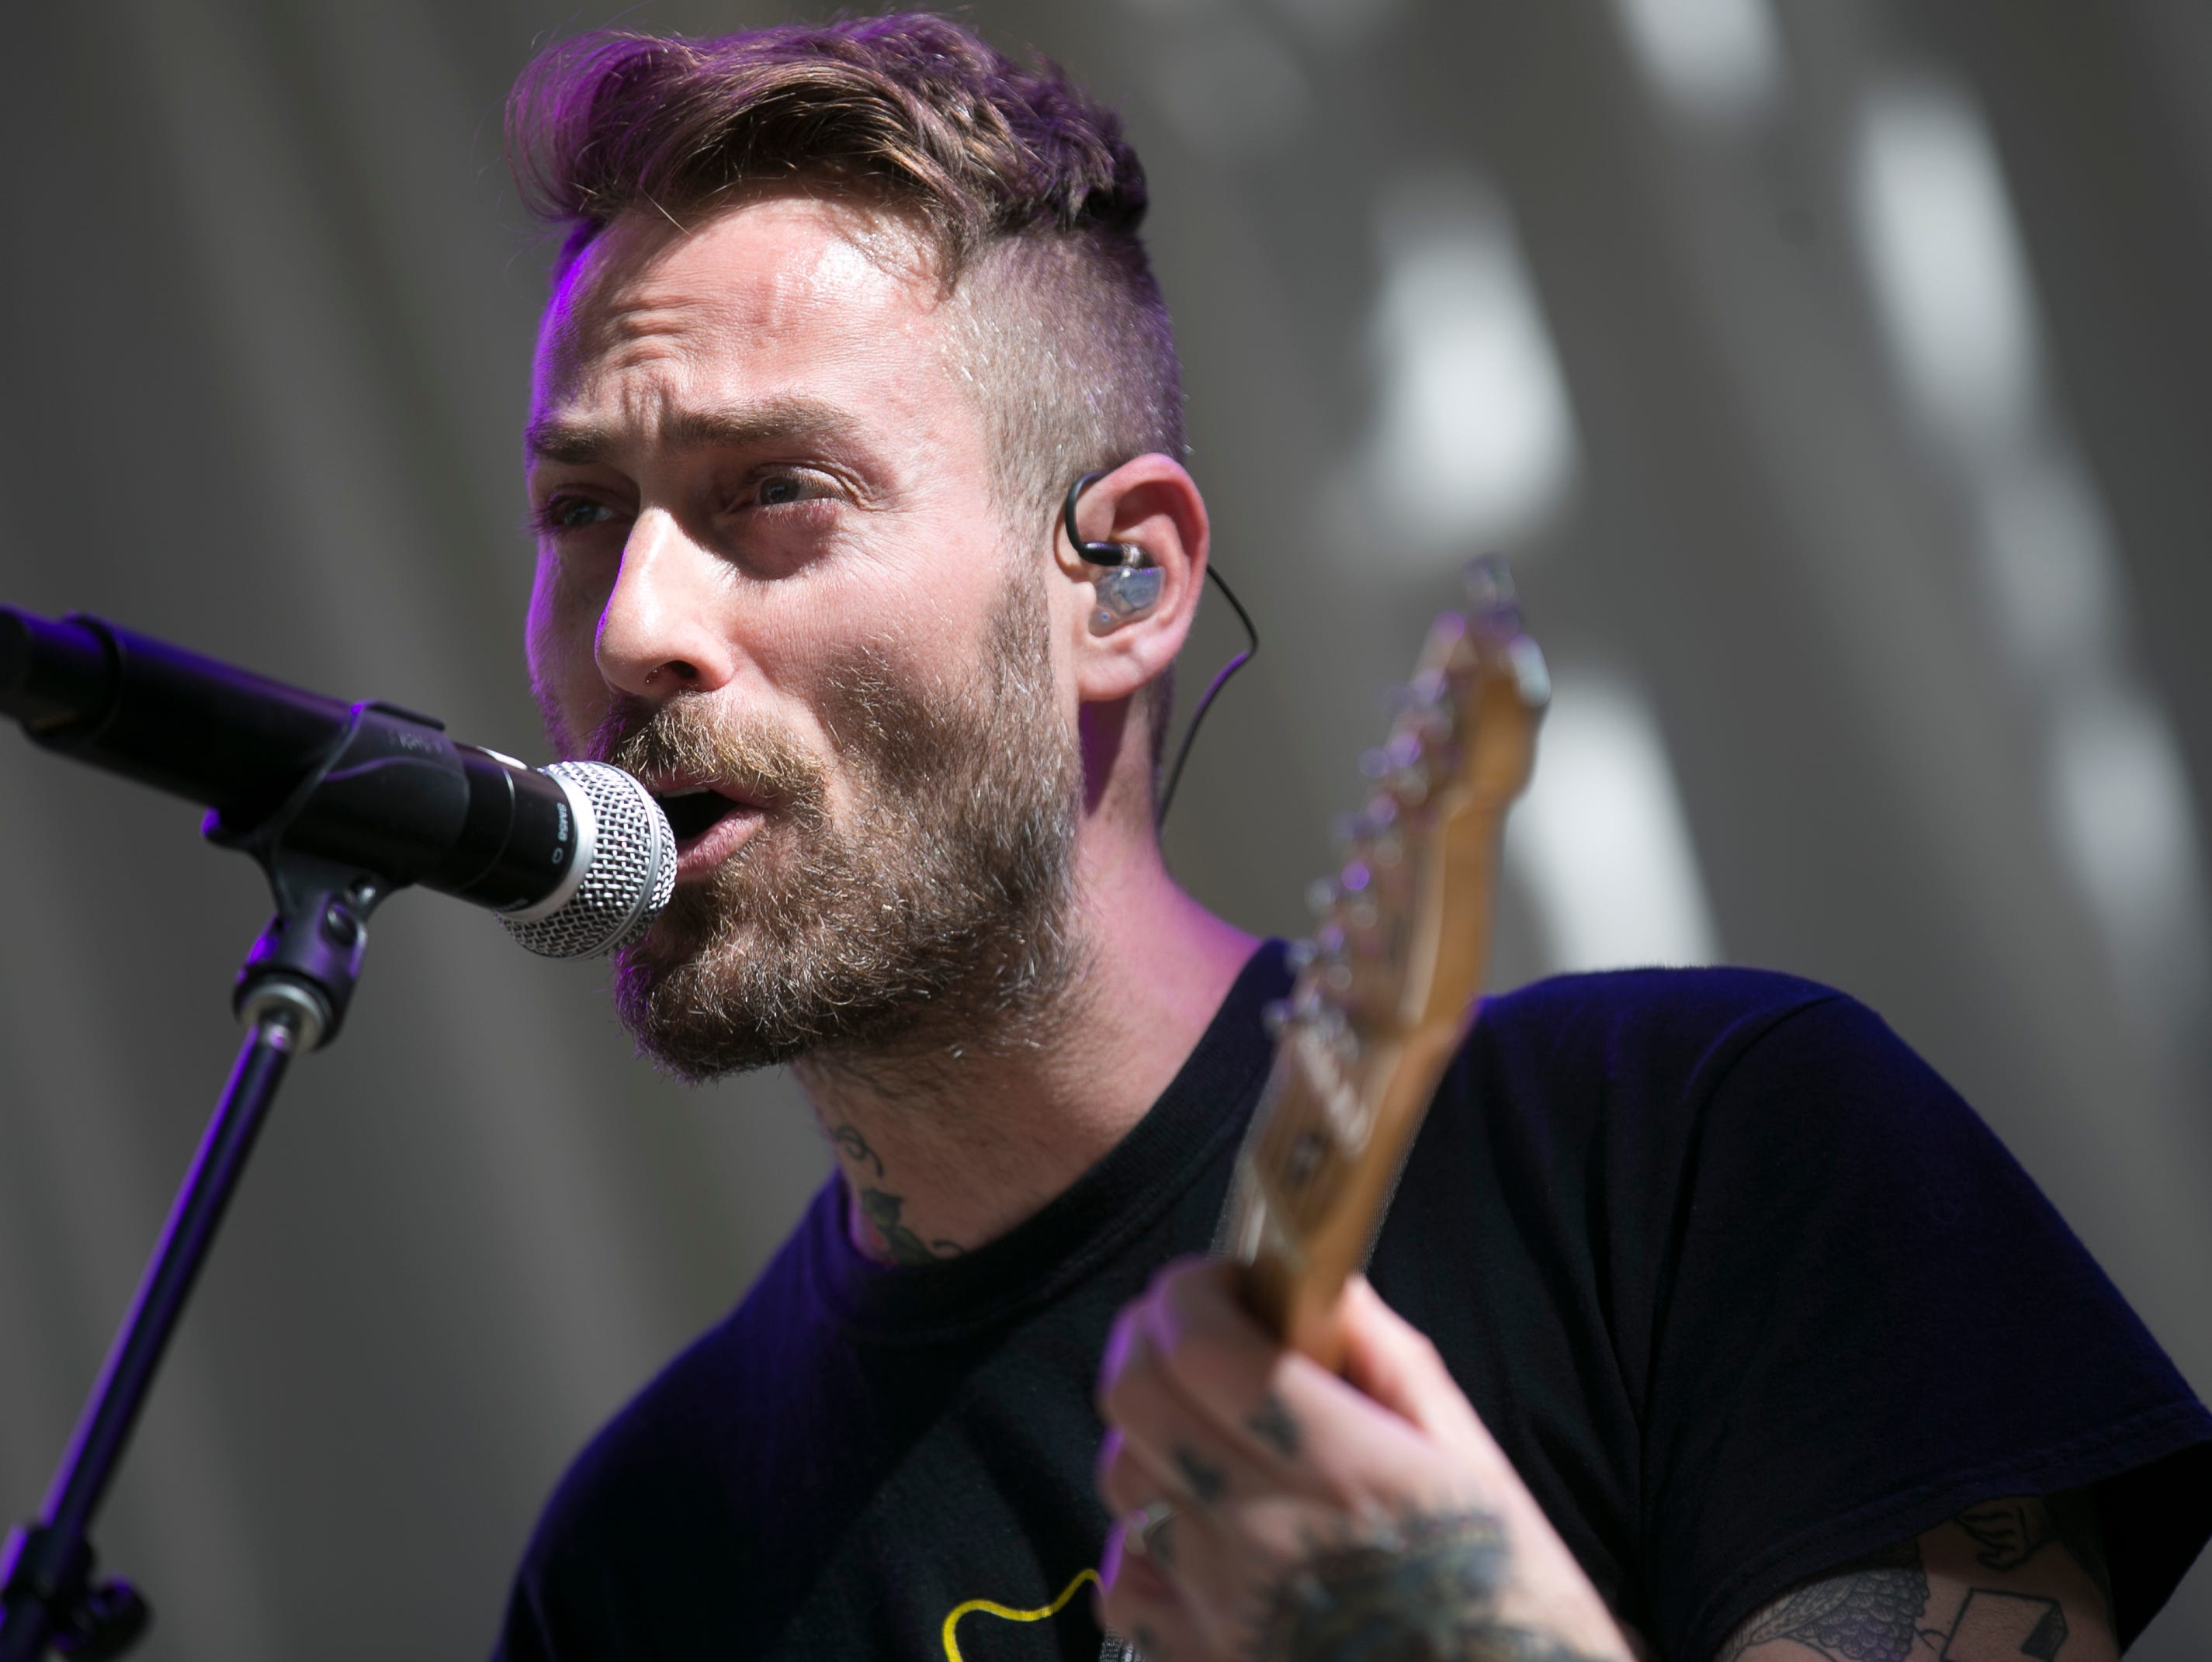 American Football performs on the main stage at the 2019 Form Arcosanti music festival near Camp Verde, Arizona on Fri. May. 10, 2019.